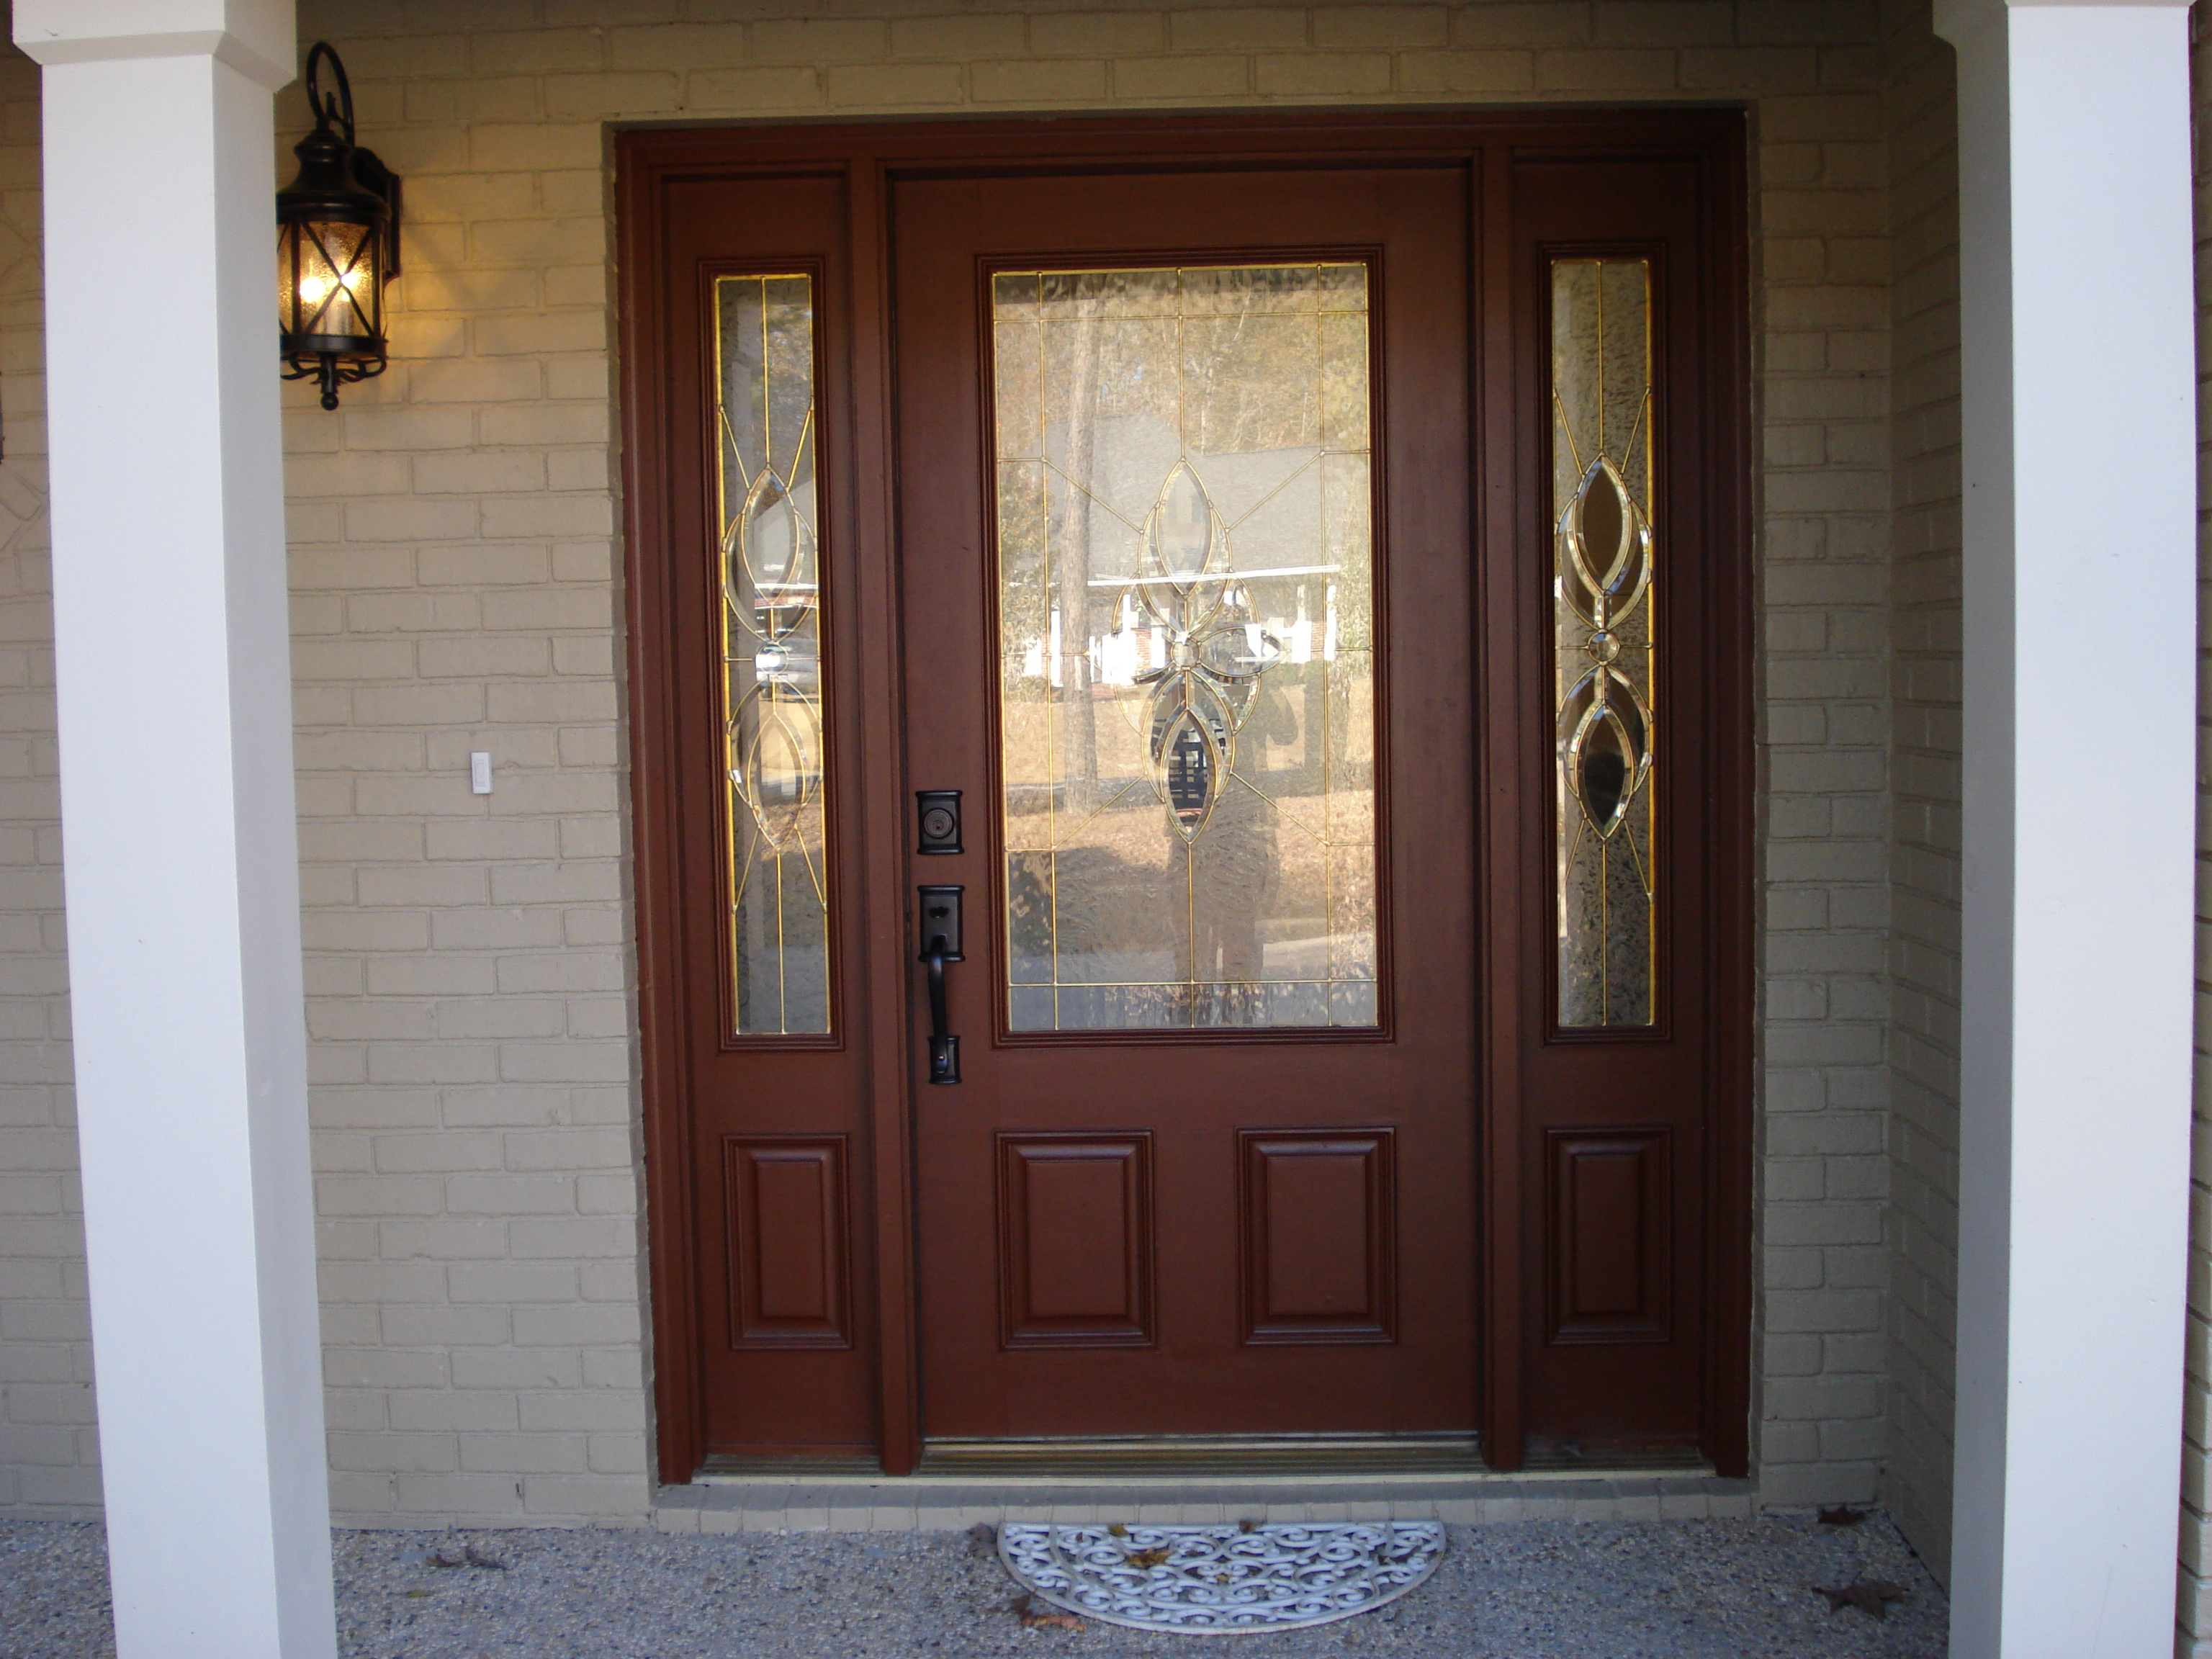 2304 #896C42 Exterior Paint Colors Doors Interior & Exterior Doors image Exterior Paint For Doors 41233072